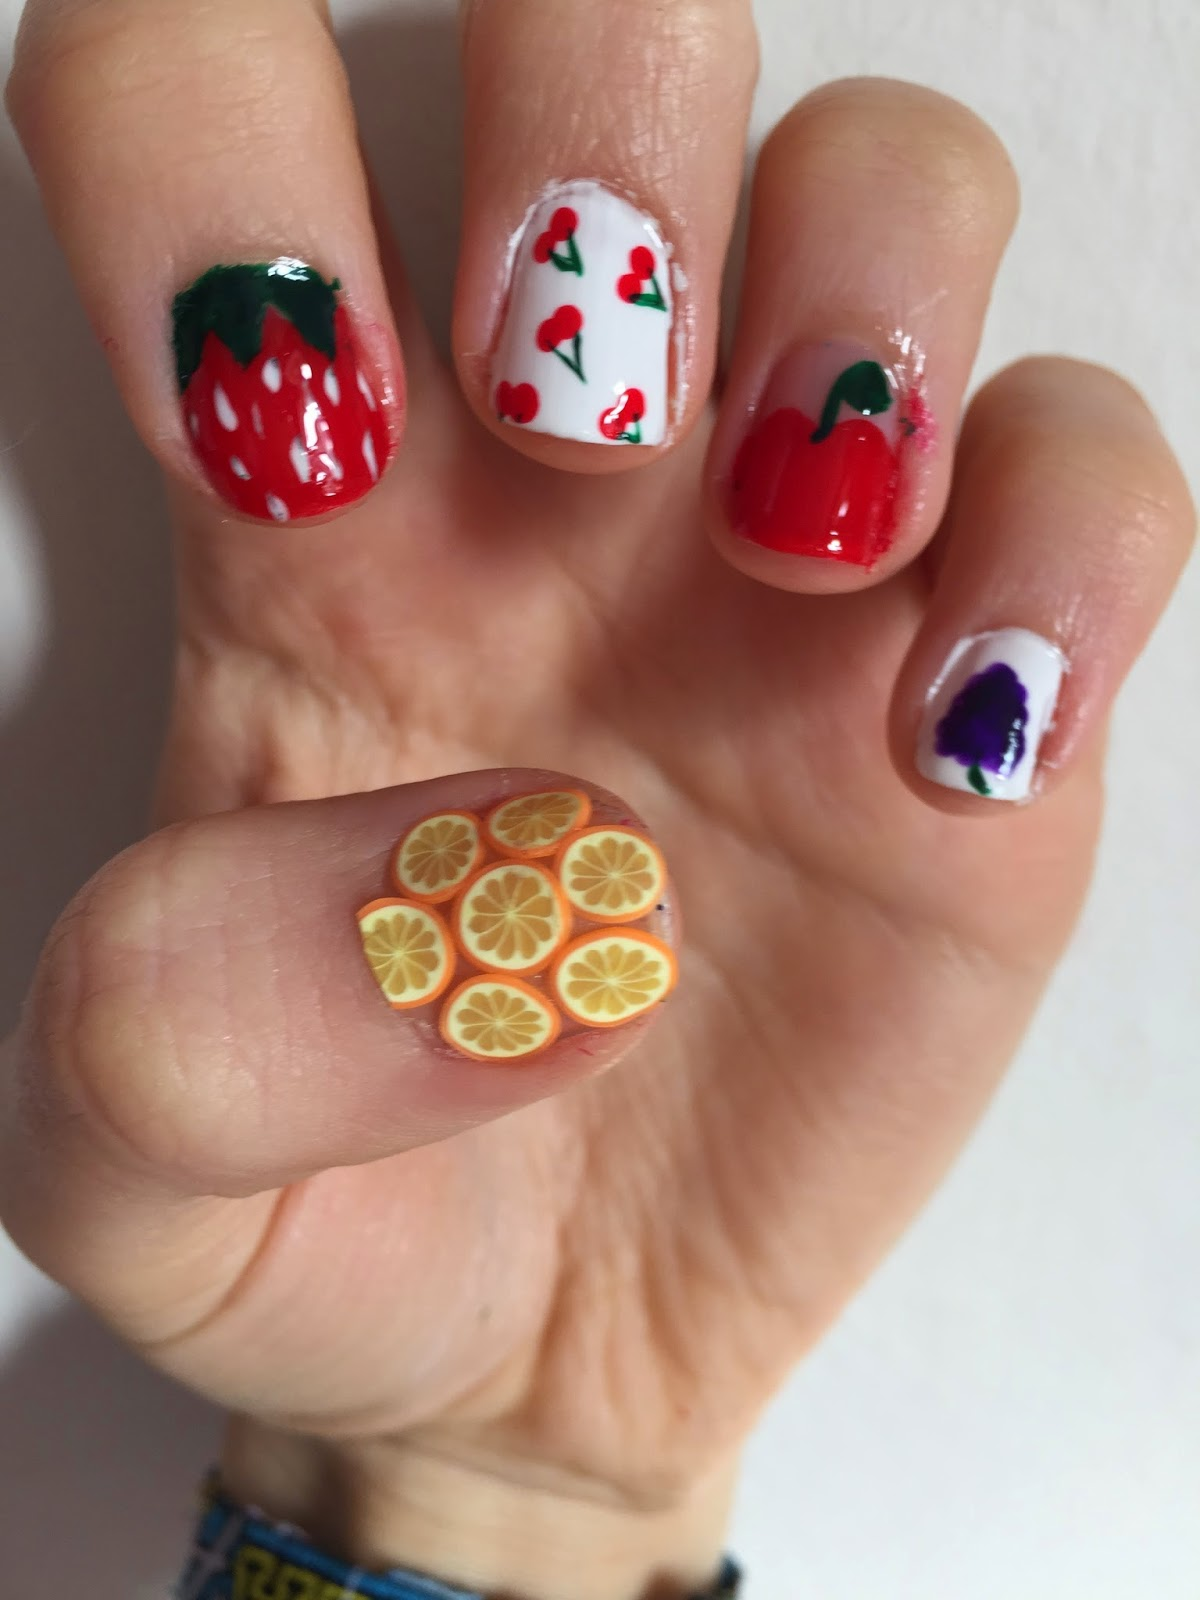 Laras nails froot nails tutorial froot by marina and the diamonds almost constantly at the moment whilst doing revision so i thought why not do a froot inspired nail art tutorial prinsesfo Gallery